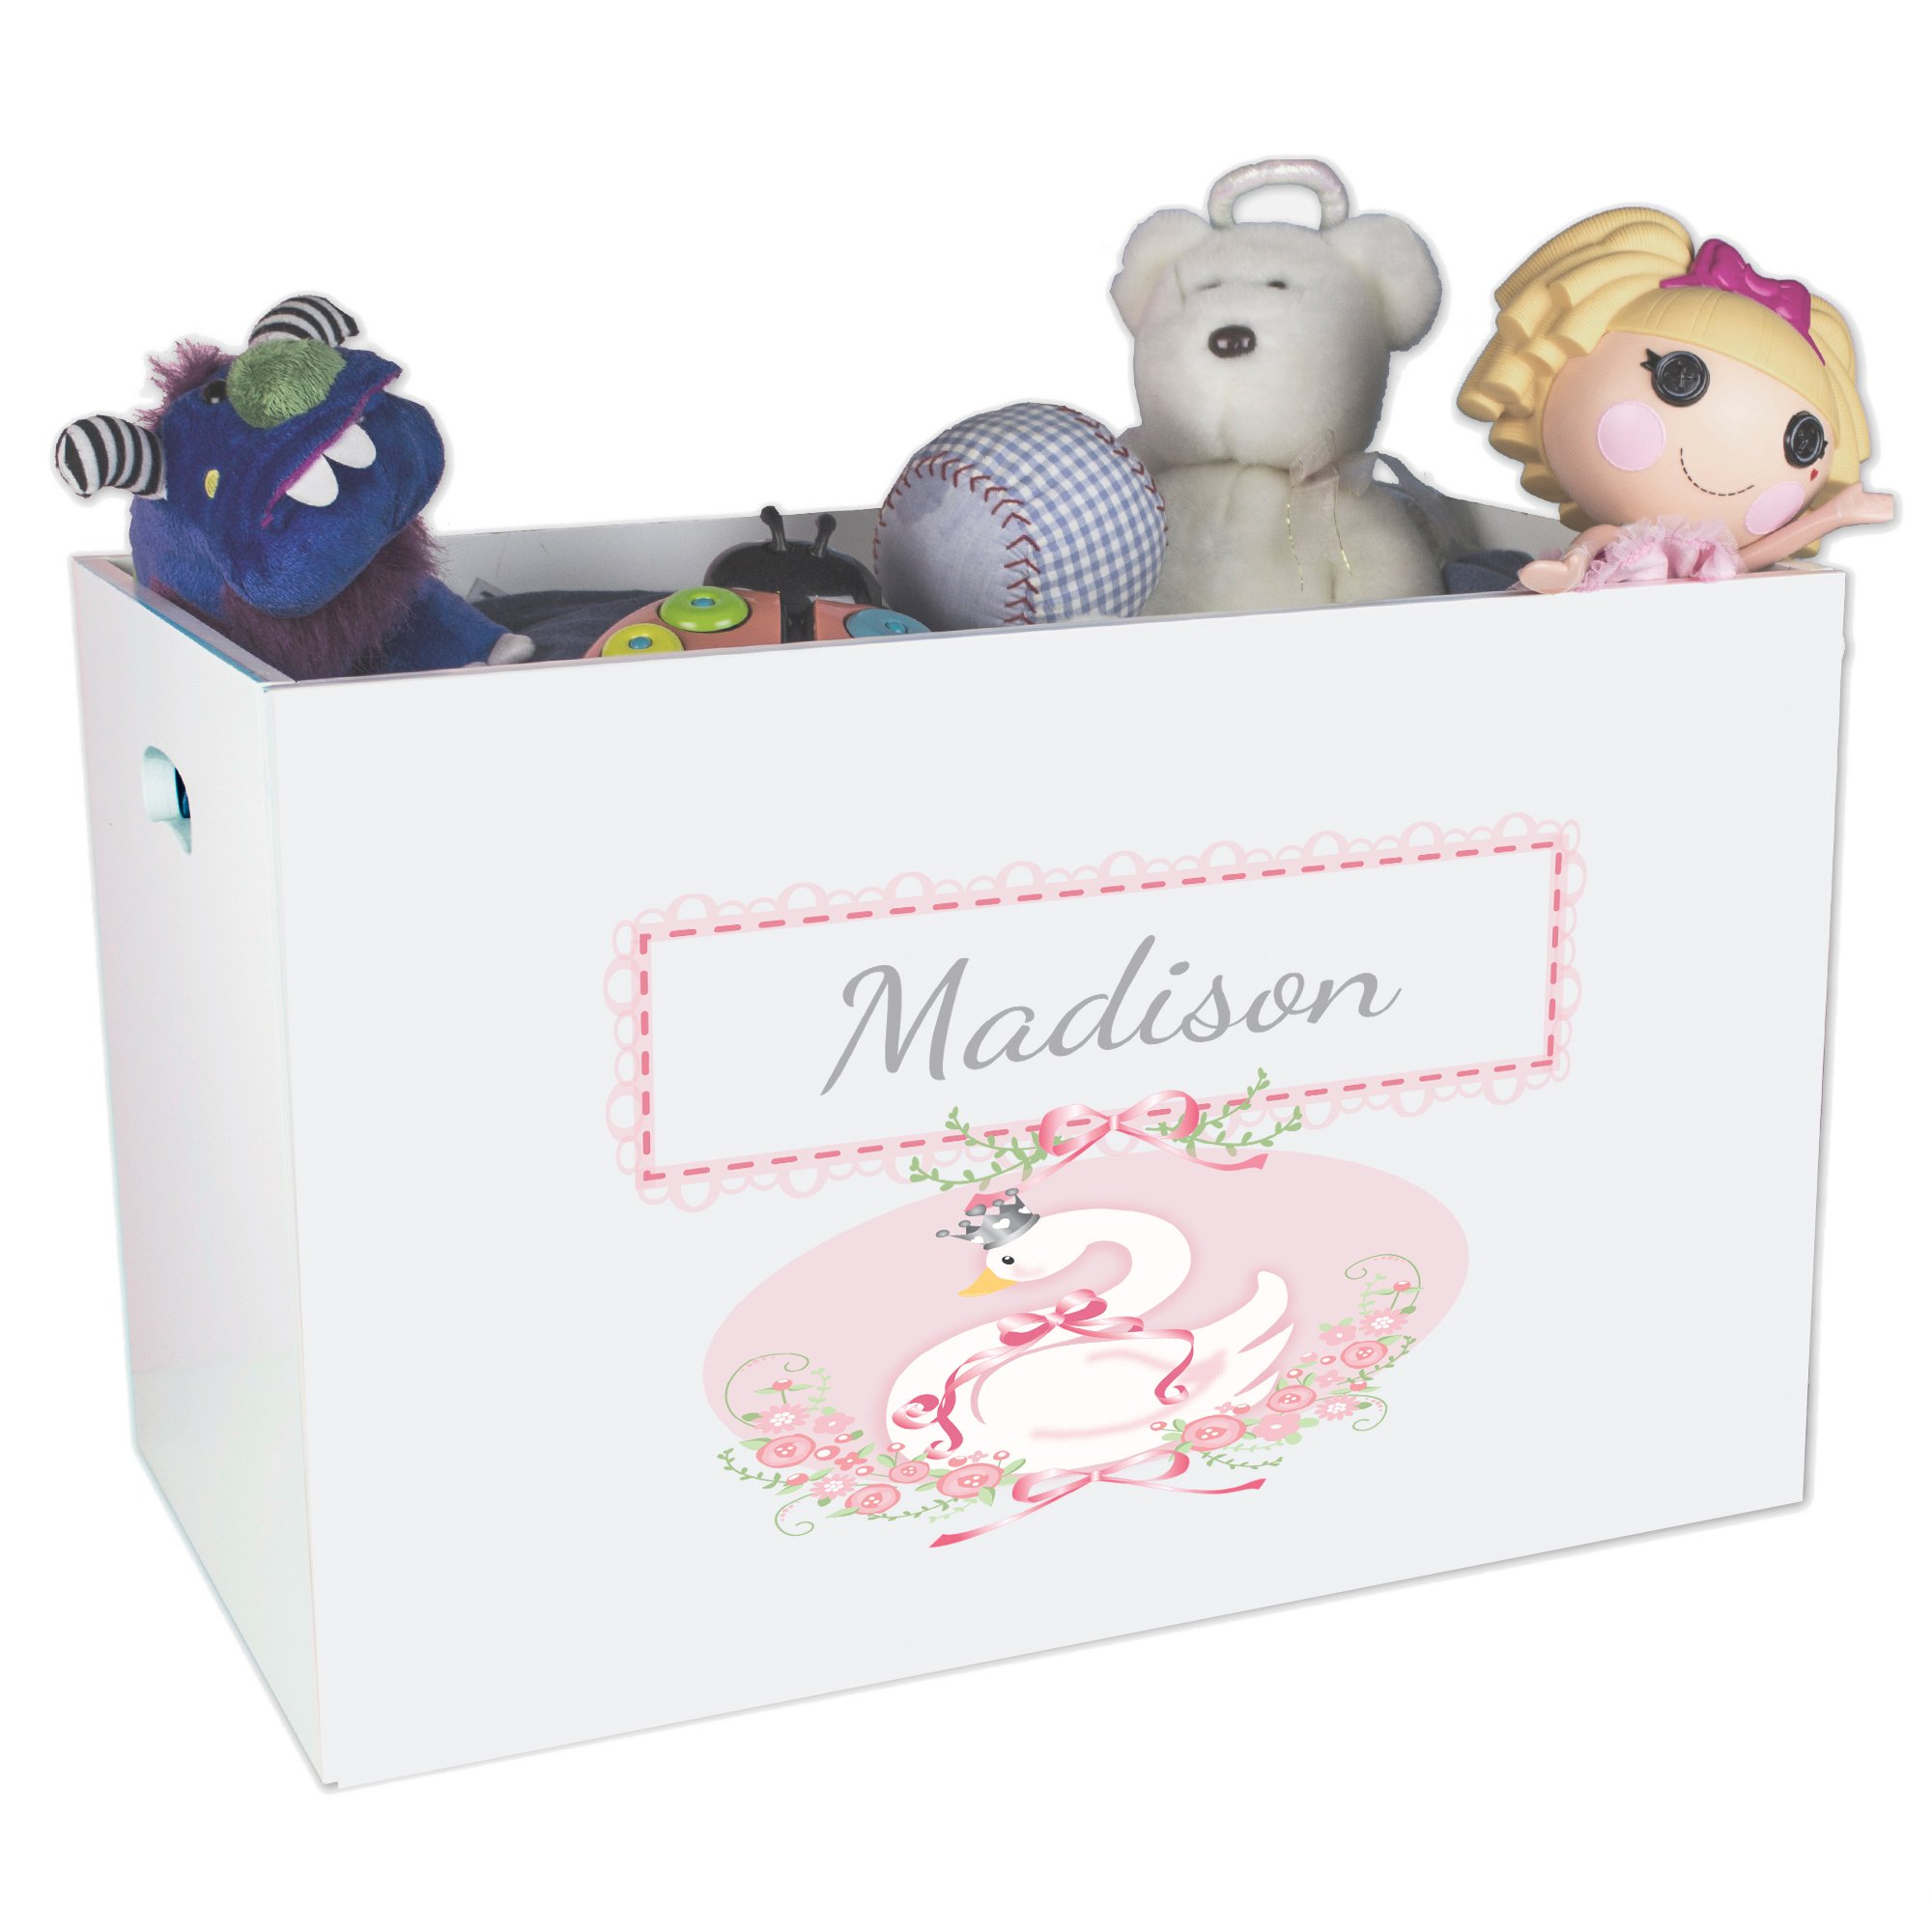 Personalized Rubber ducky Childrens Nursery White Open Toy Box